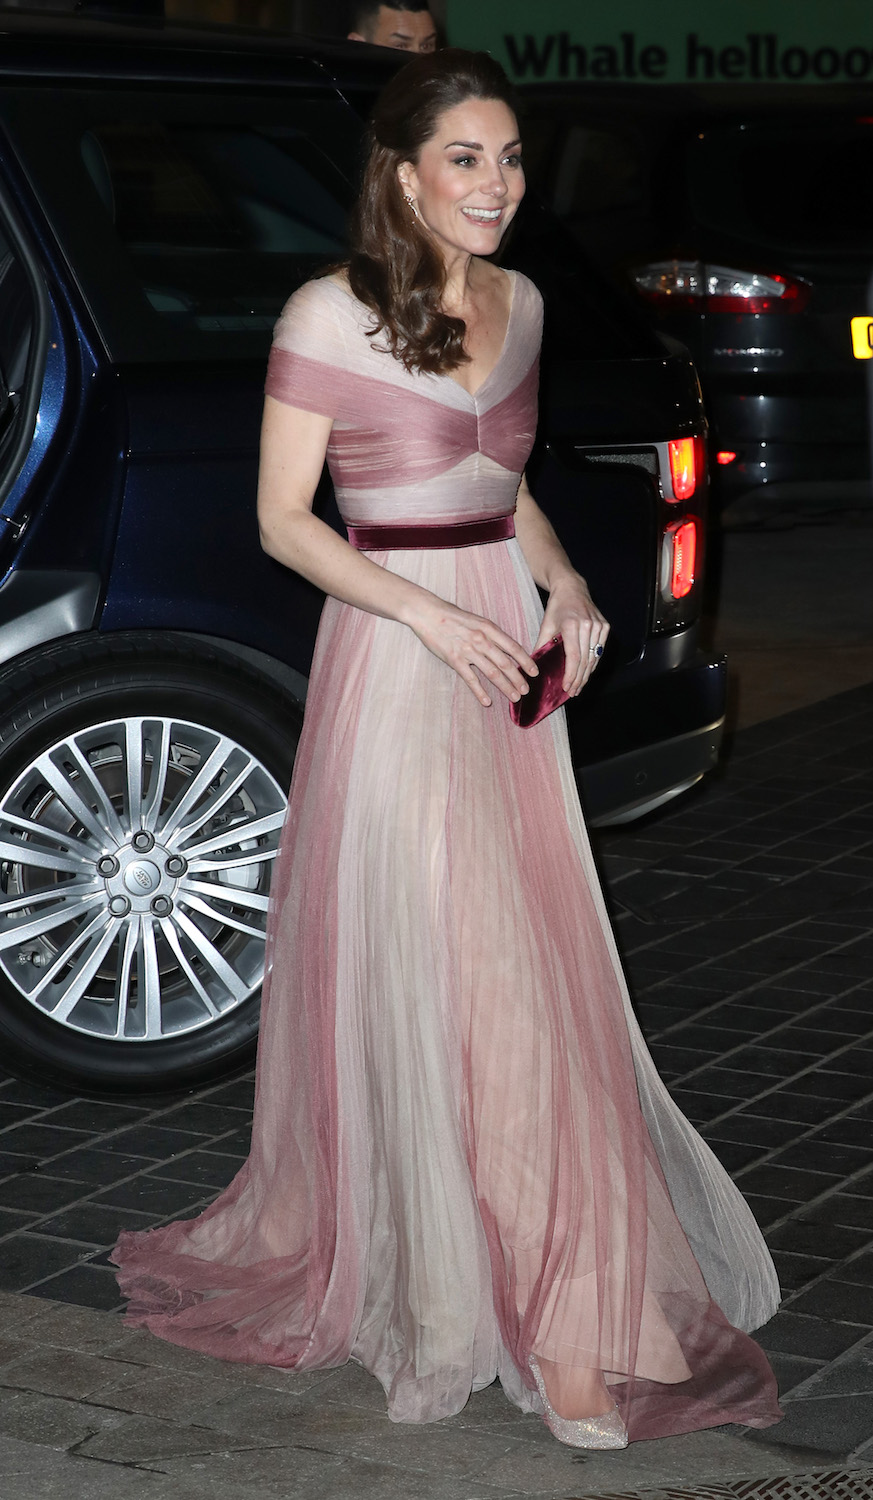 LONDON, ENGLAND - FEBRUARY 13: Catherine, Duchess of Cambridge, patron of 100 Women in Finance's Philanthropic Initiatives, attends a Gala Dinner in aid of 'Mentally Healthy Schools' at the Victoria and Albert Museum on February 13, 2019 in London, England. (Photo by Chris Jackson - WPA Pool/Getty Images)